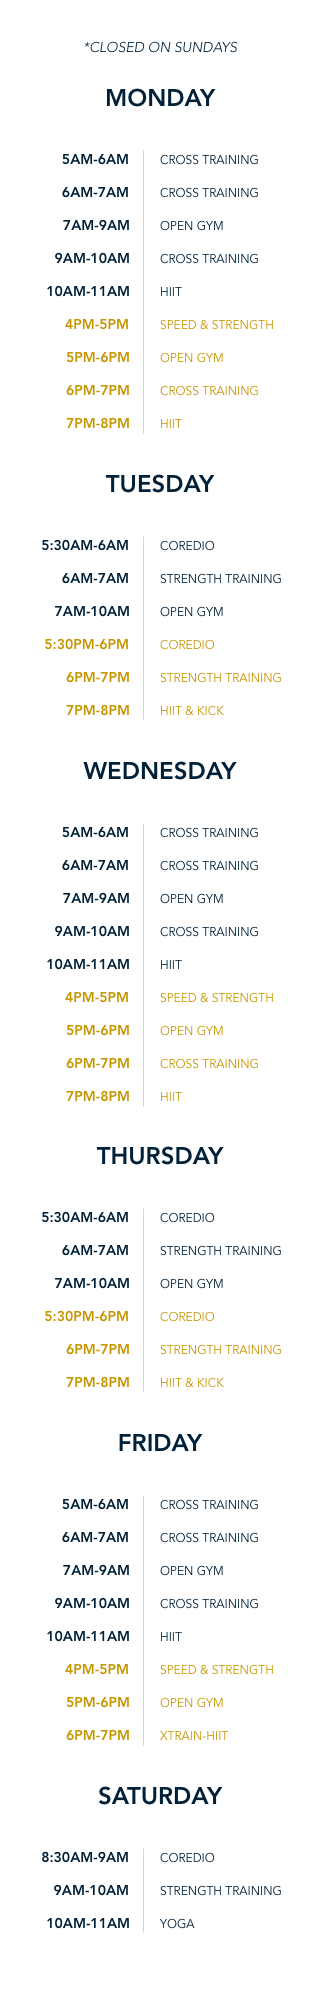 p22-mobile-sched.png